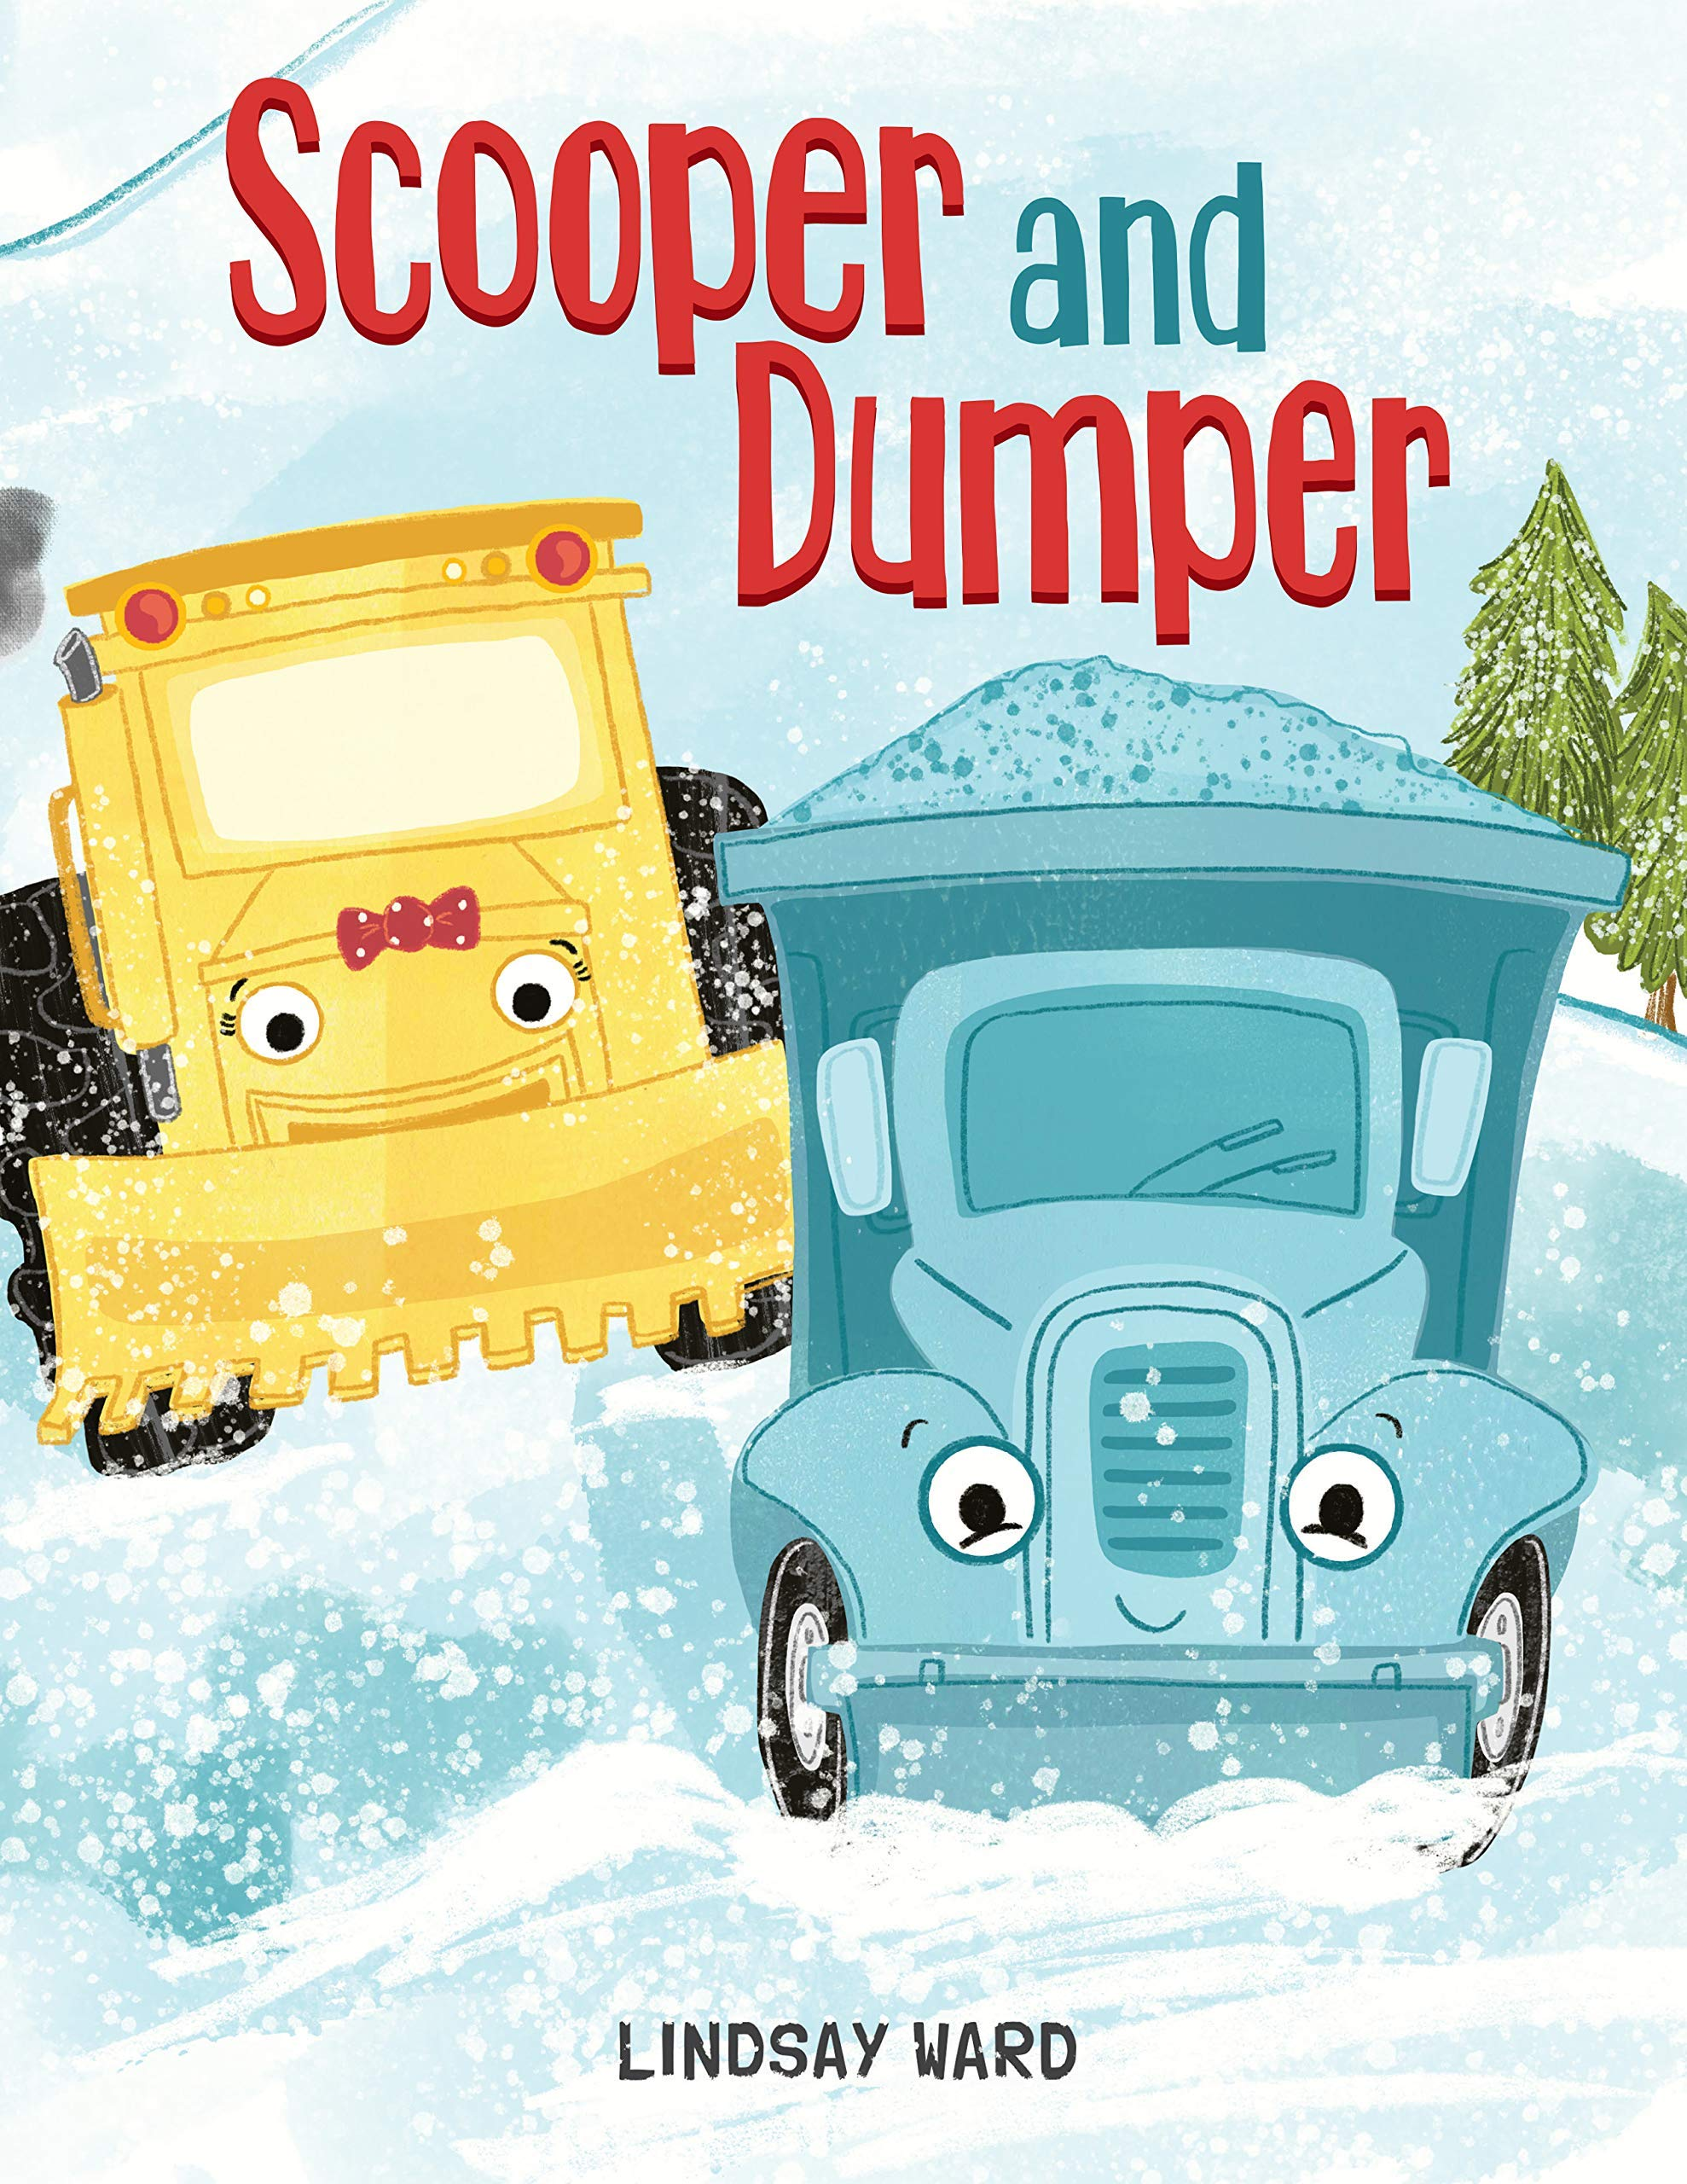 celebrate-picture-books-picture-book-review-scooper-and-dumper-cover